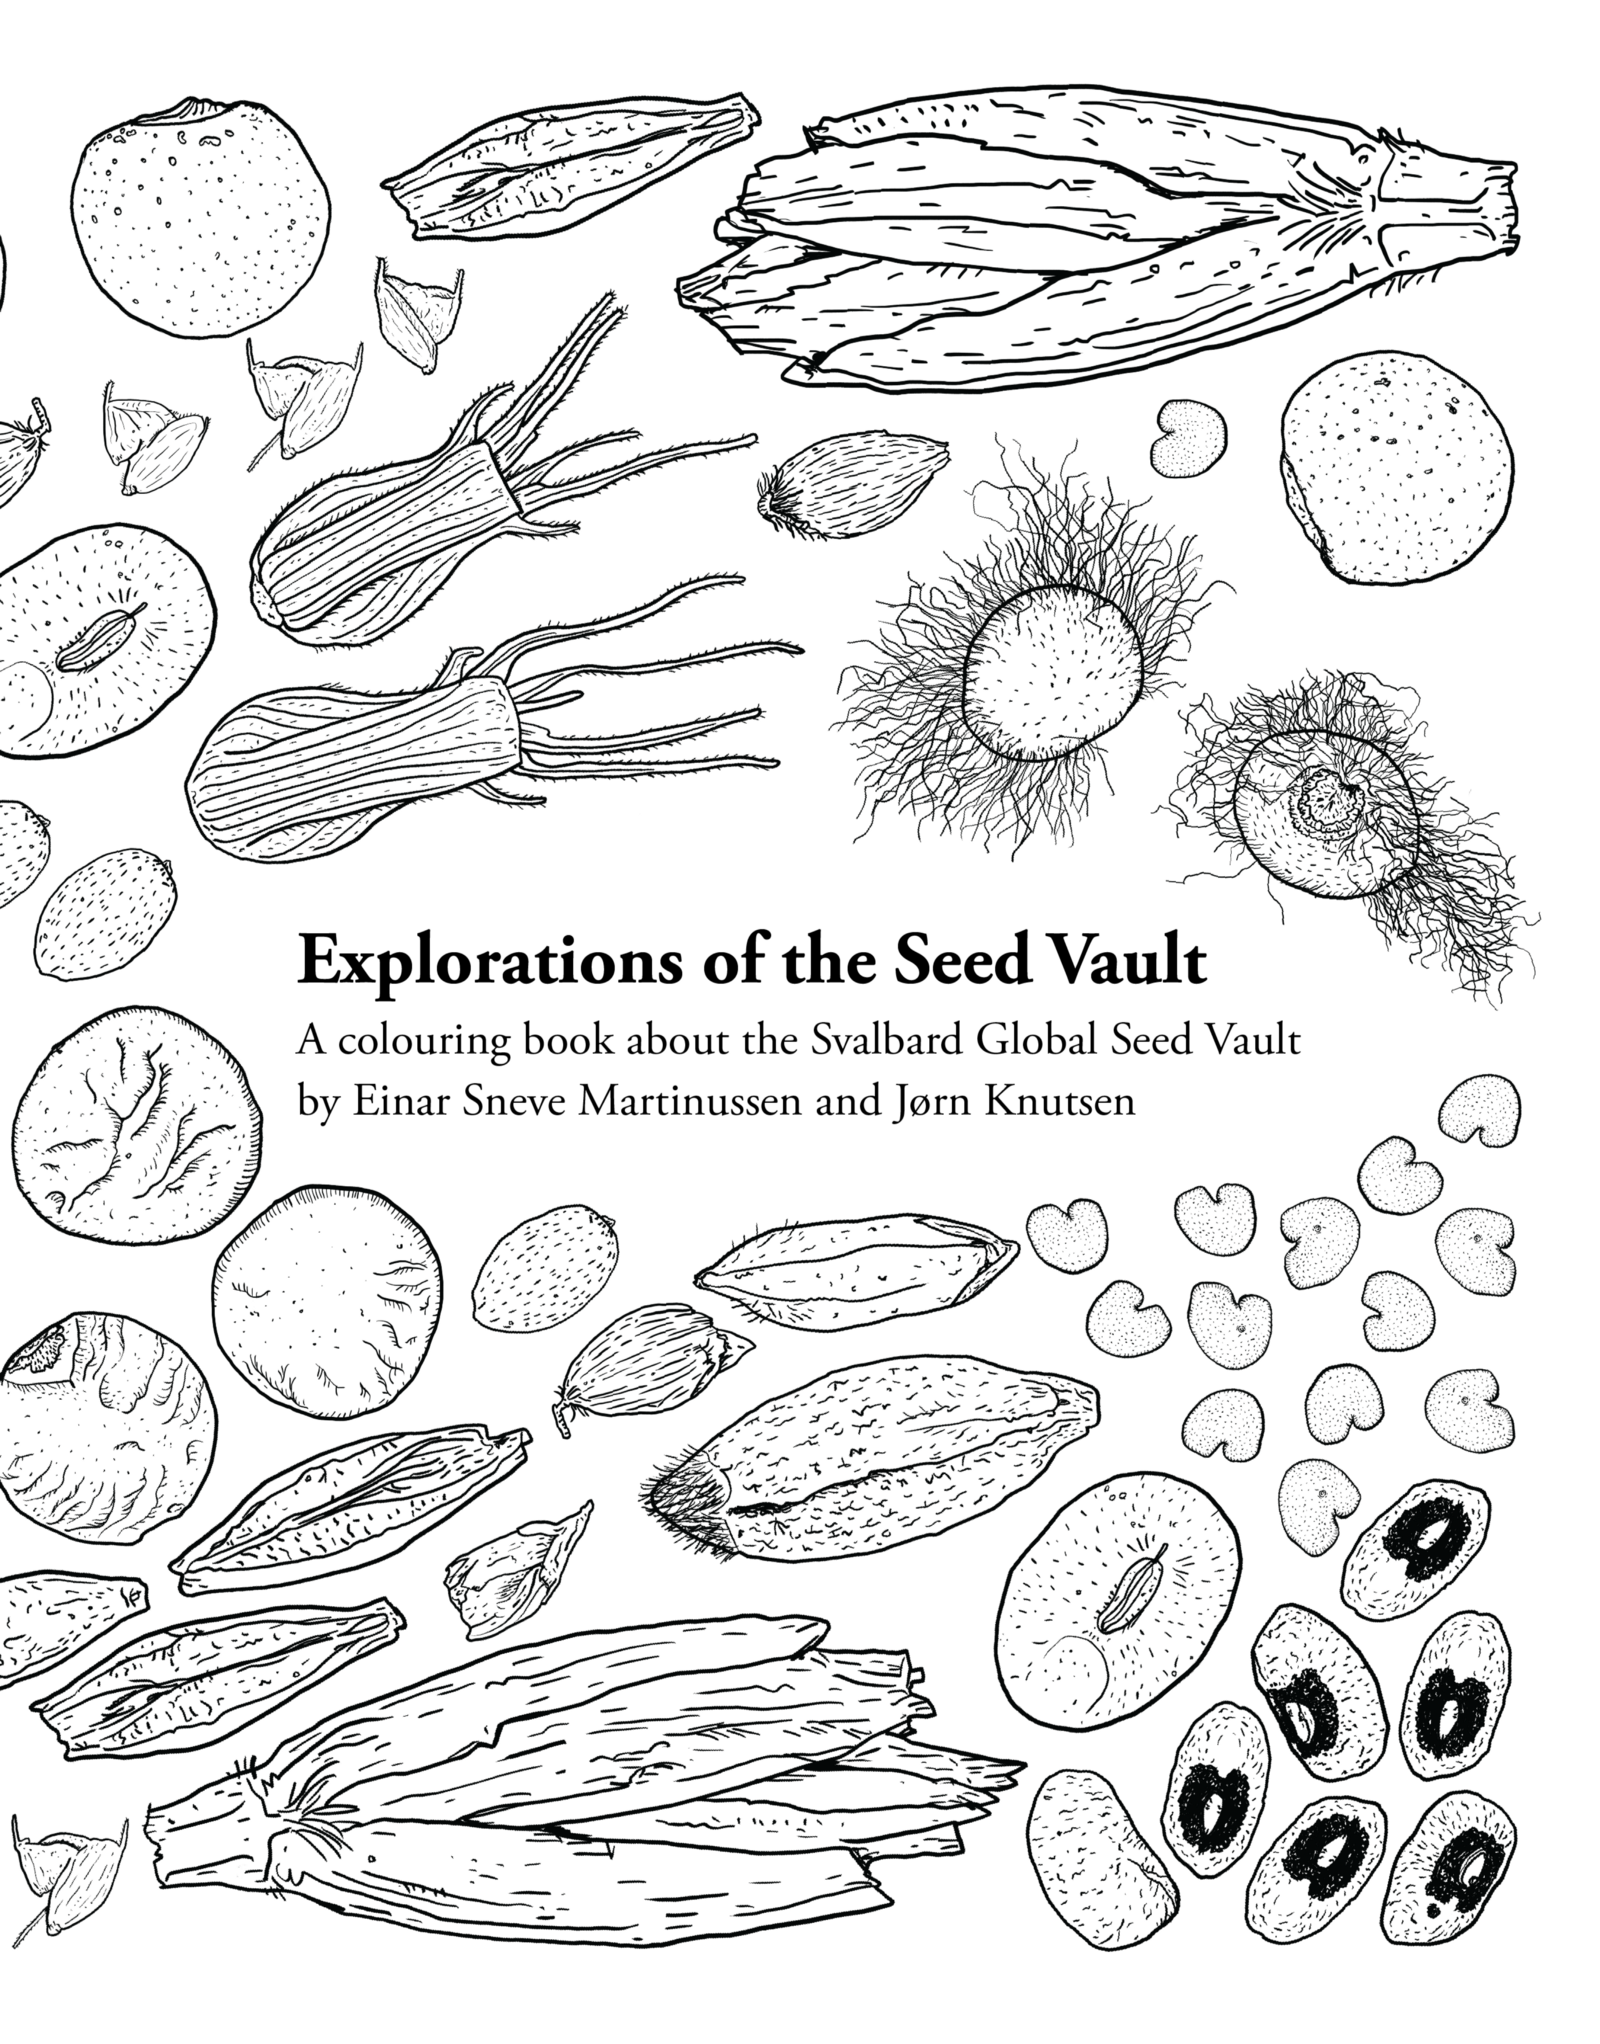 seed vault colouring book u2013 explorations of the seed vault u2013 medium